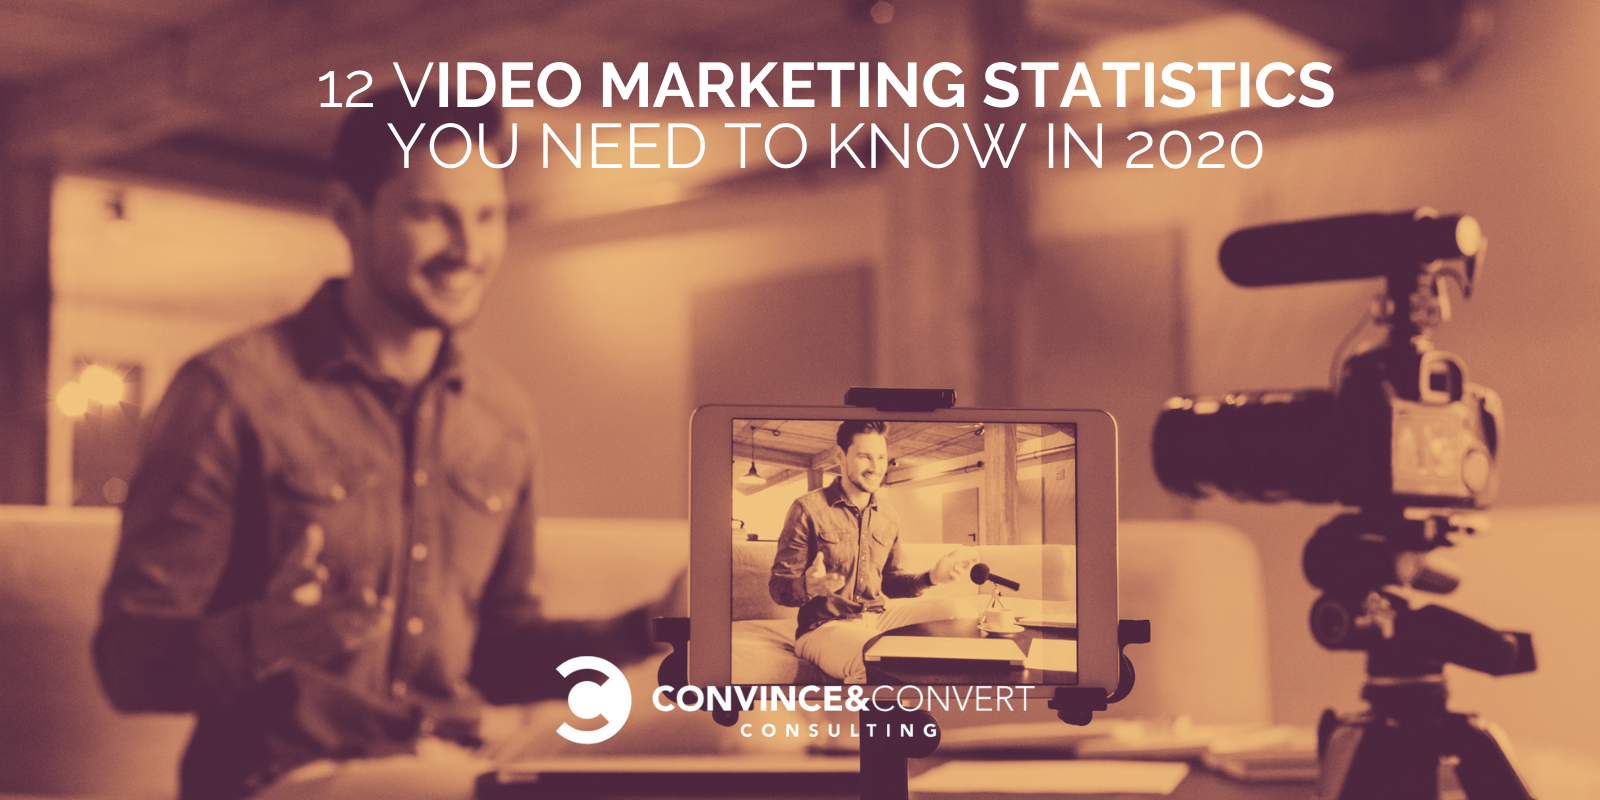 12 Statistiche di marketing video che devi conoscere nel 2020